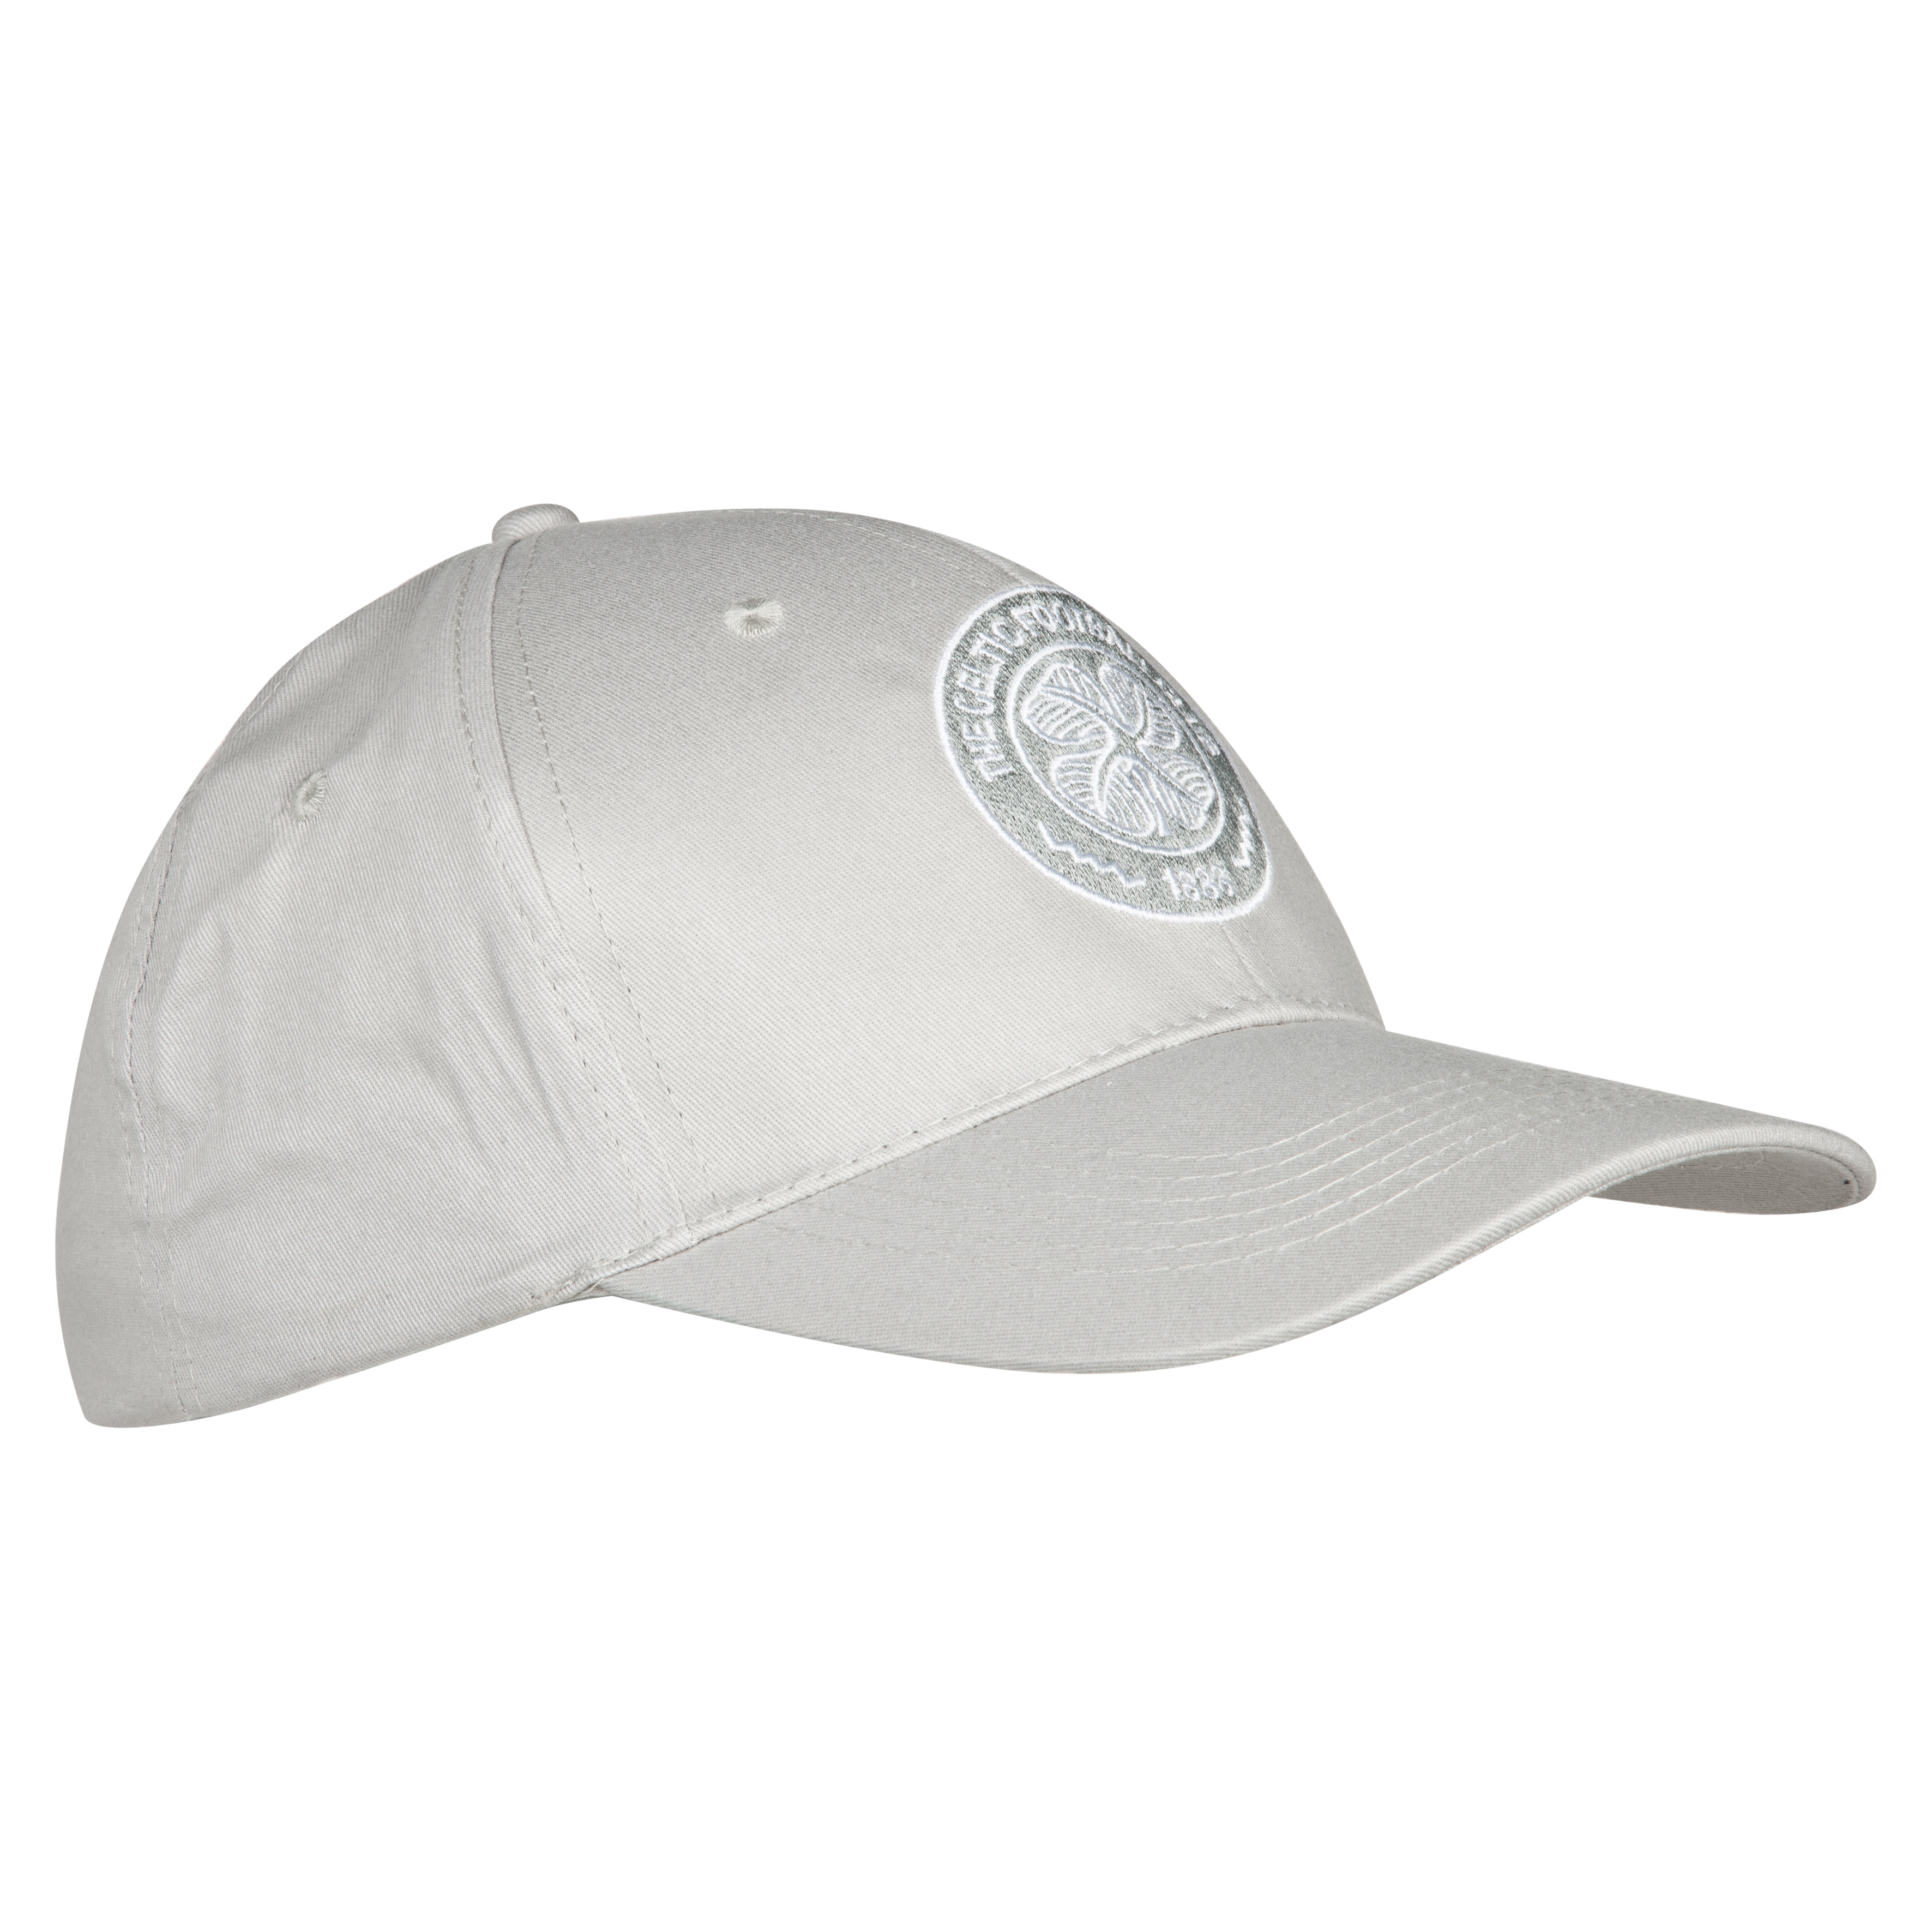 Celtic Basic Crest Cap - Grey - Adult